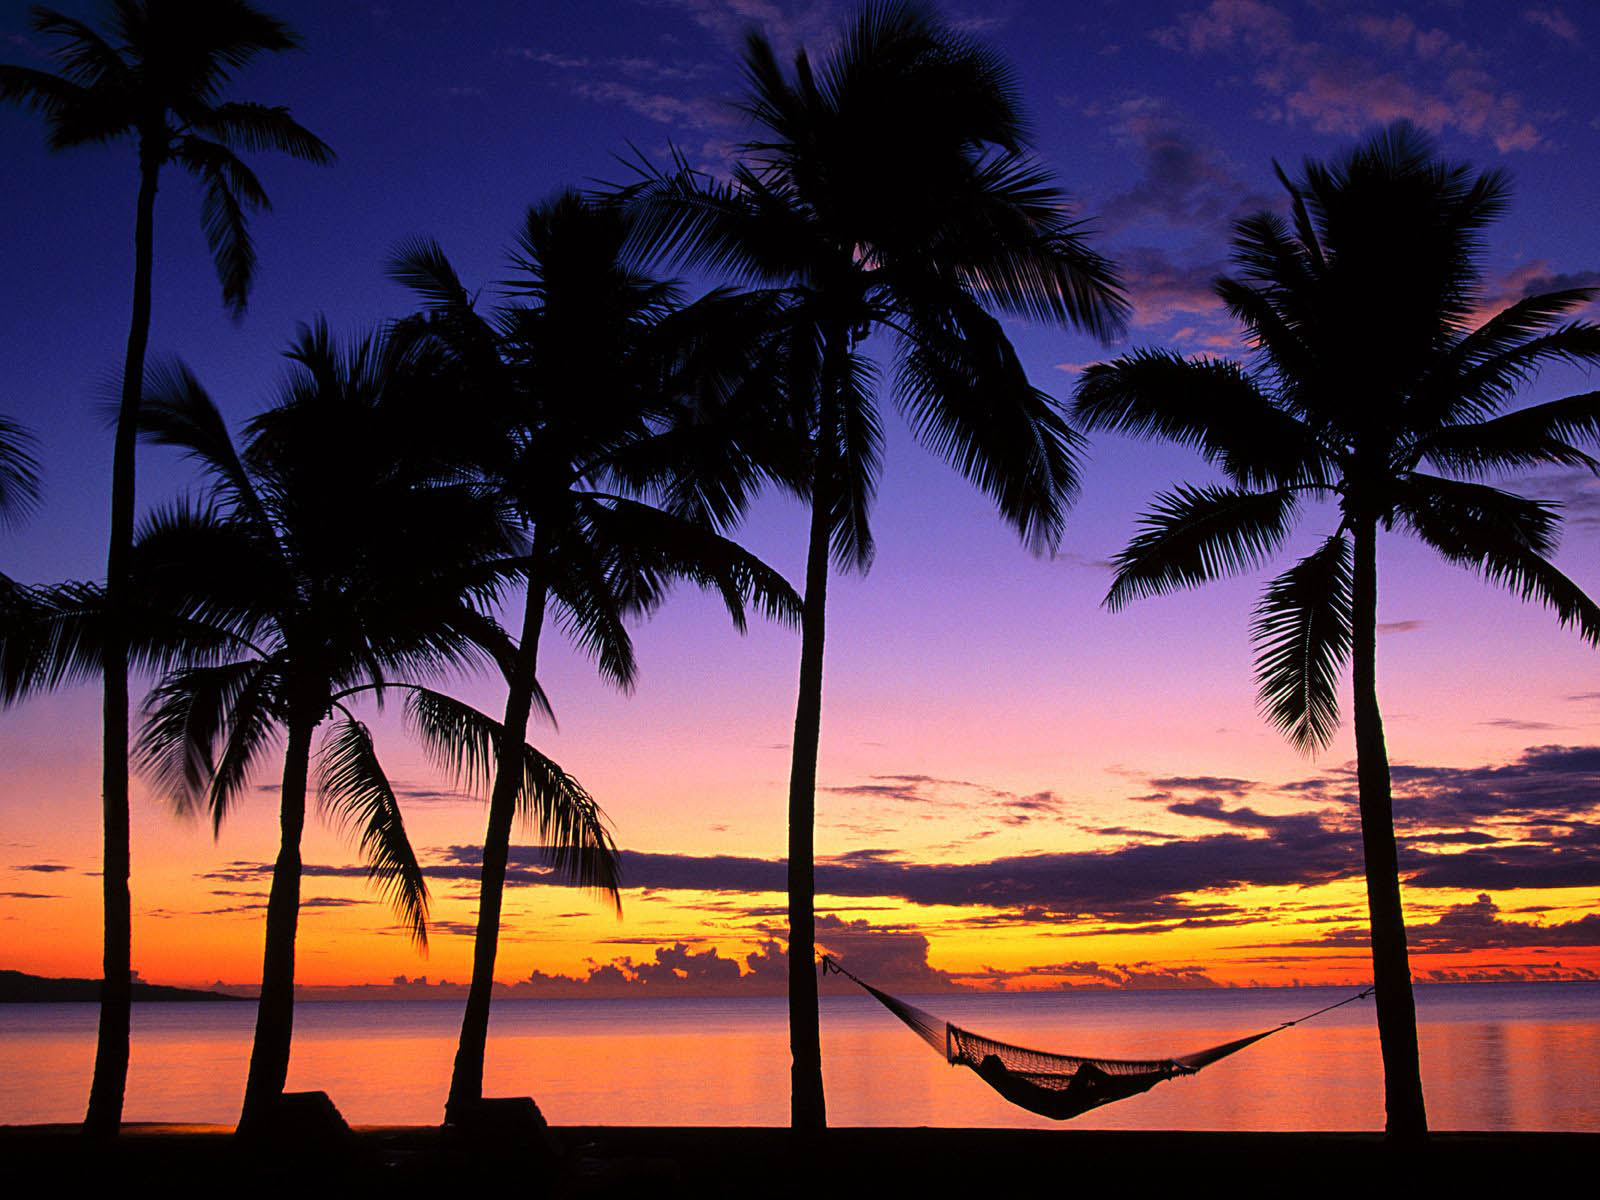 Tropical Island Sunset: Wallpapers: Island Sunset Wallpapers